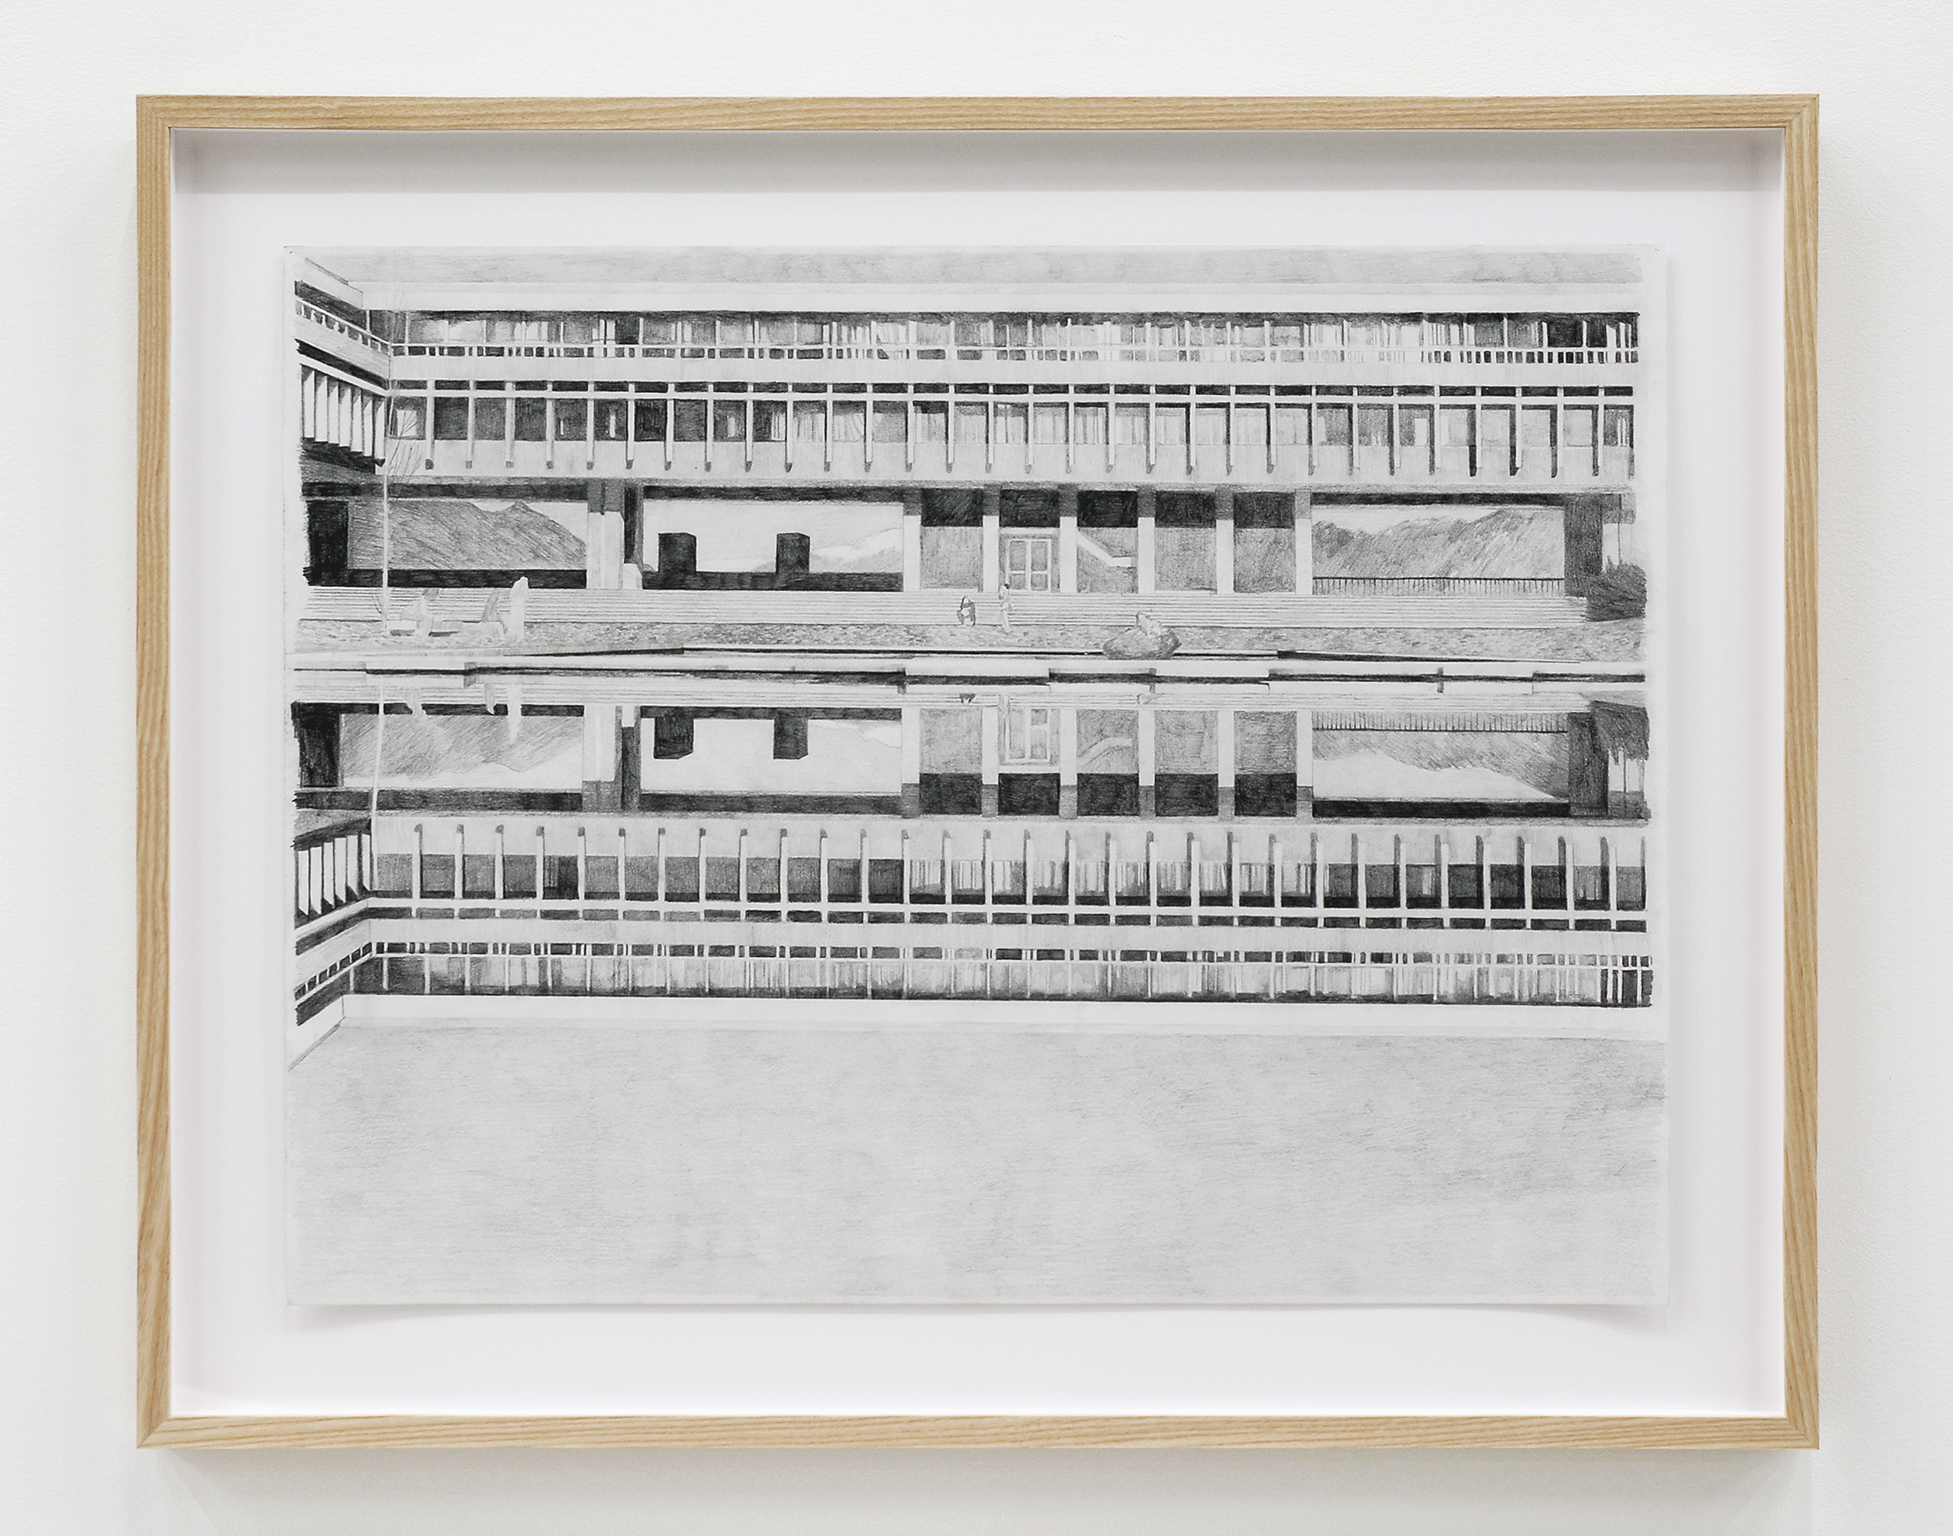 Alex Morrison, The Poetics of Grey (No. 14), 2007, graphite on paper, 26 x 32 in. (65 x 80 cm) by